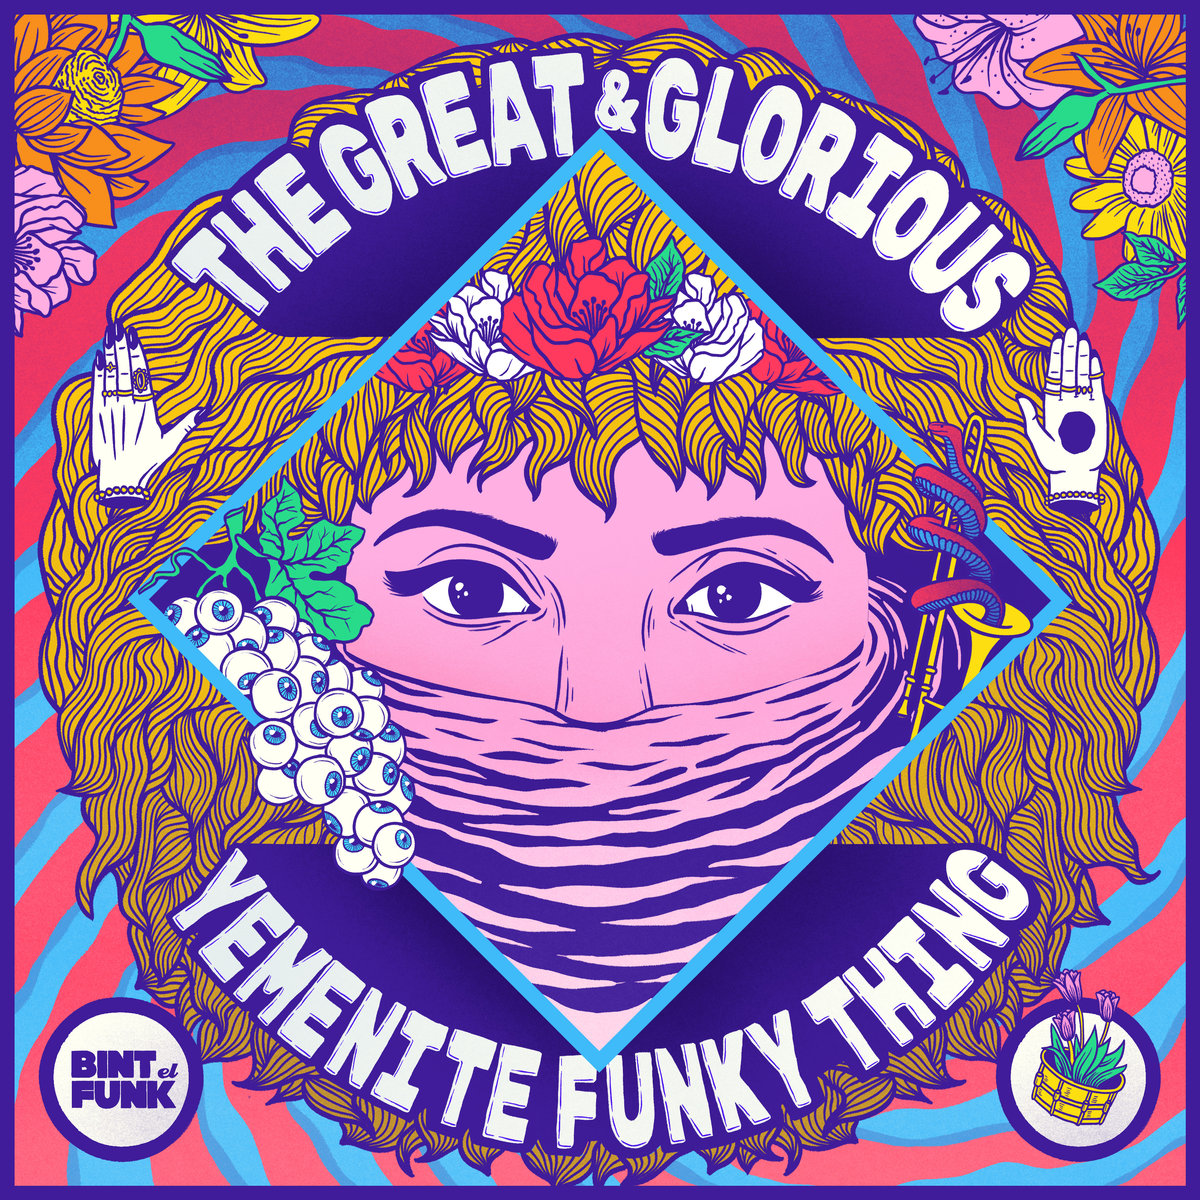 BINT EL FUNK - The Great & Glorious Yemenite Funky Thing